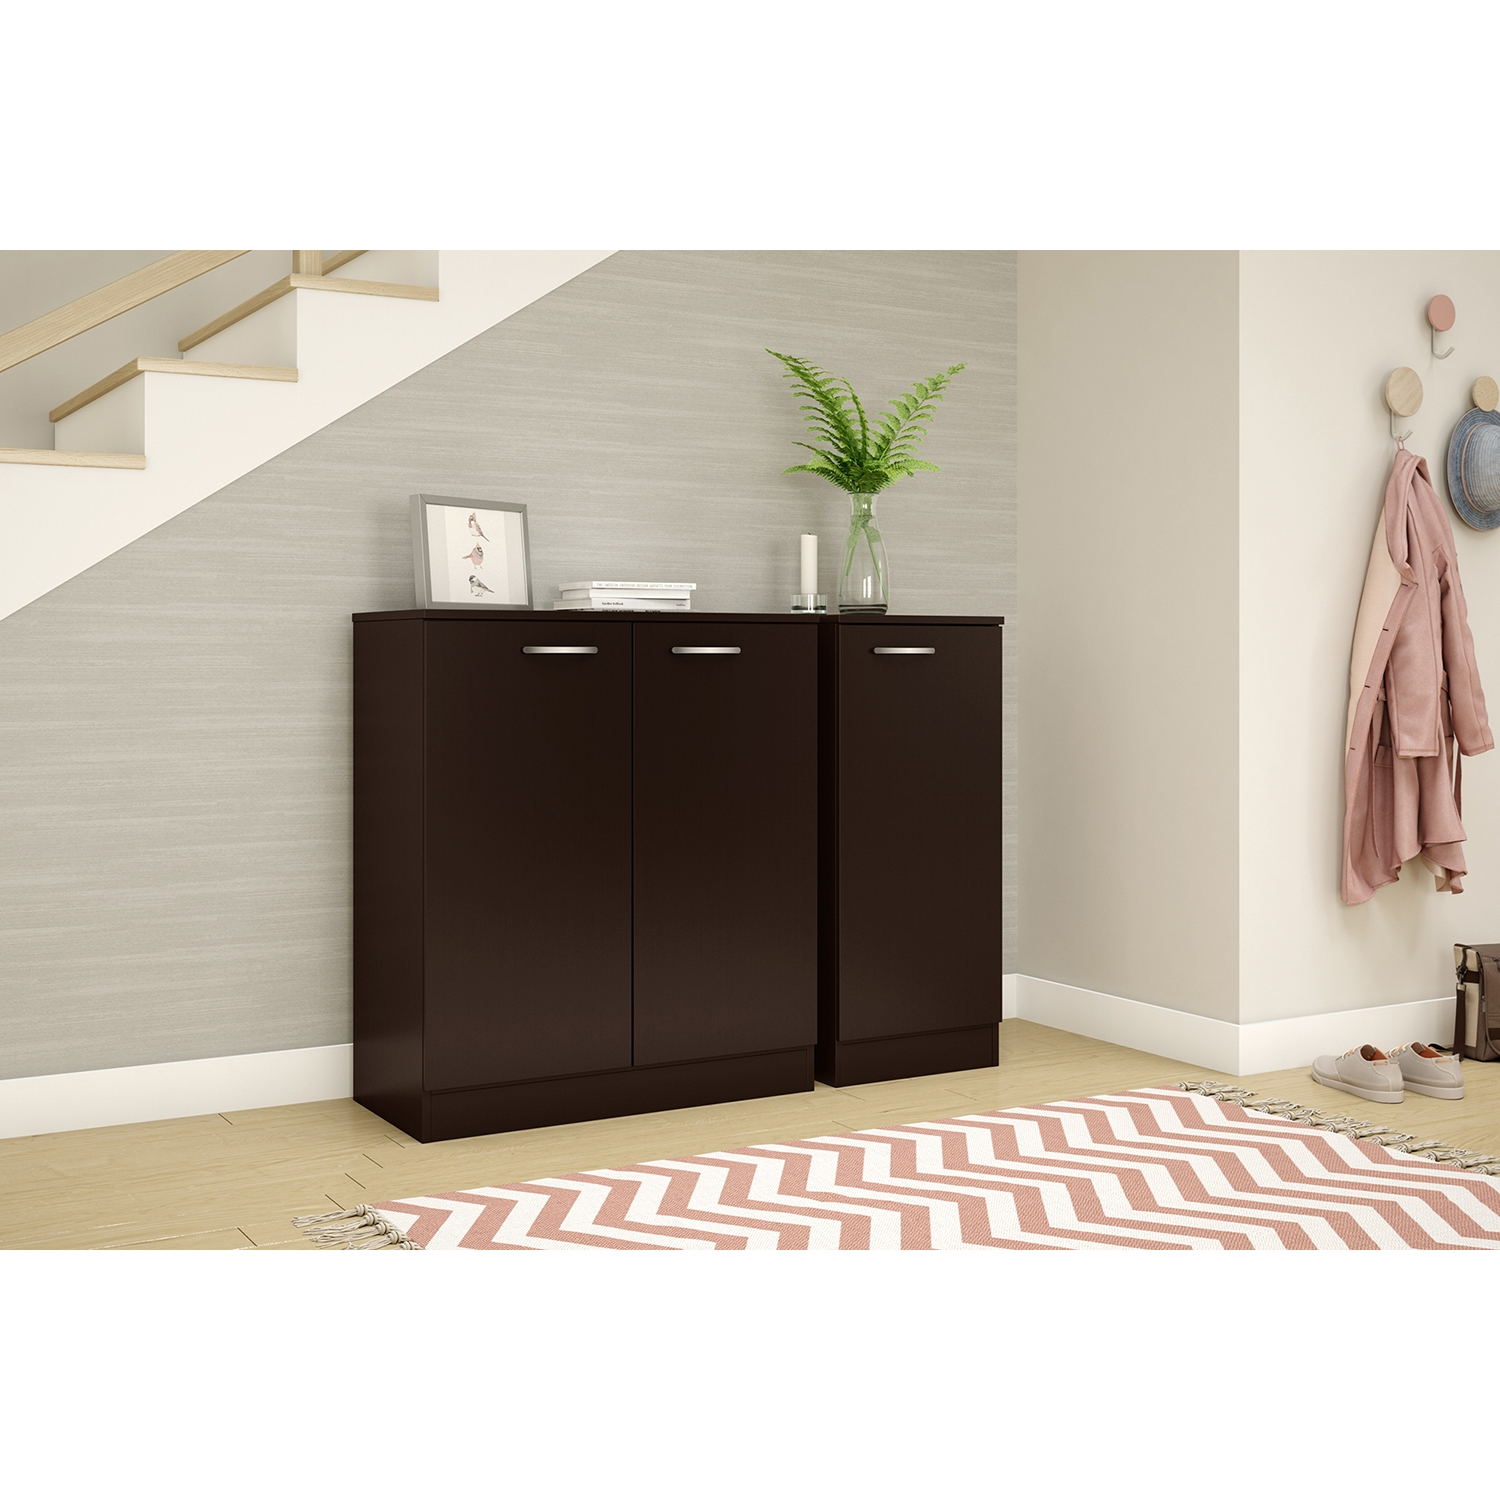 Axess Storage Cabinet - 2 Doors, Chocolate - SS-10182